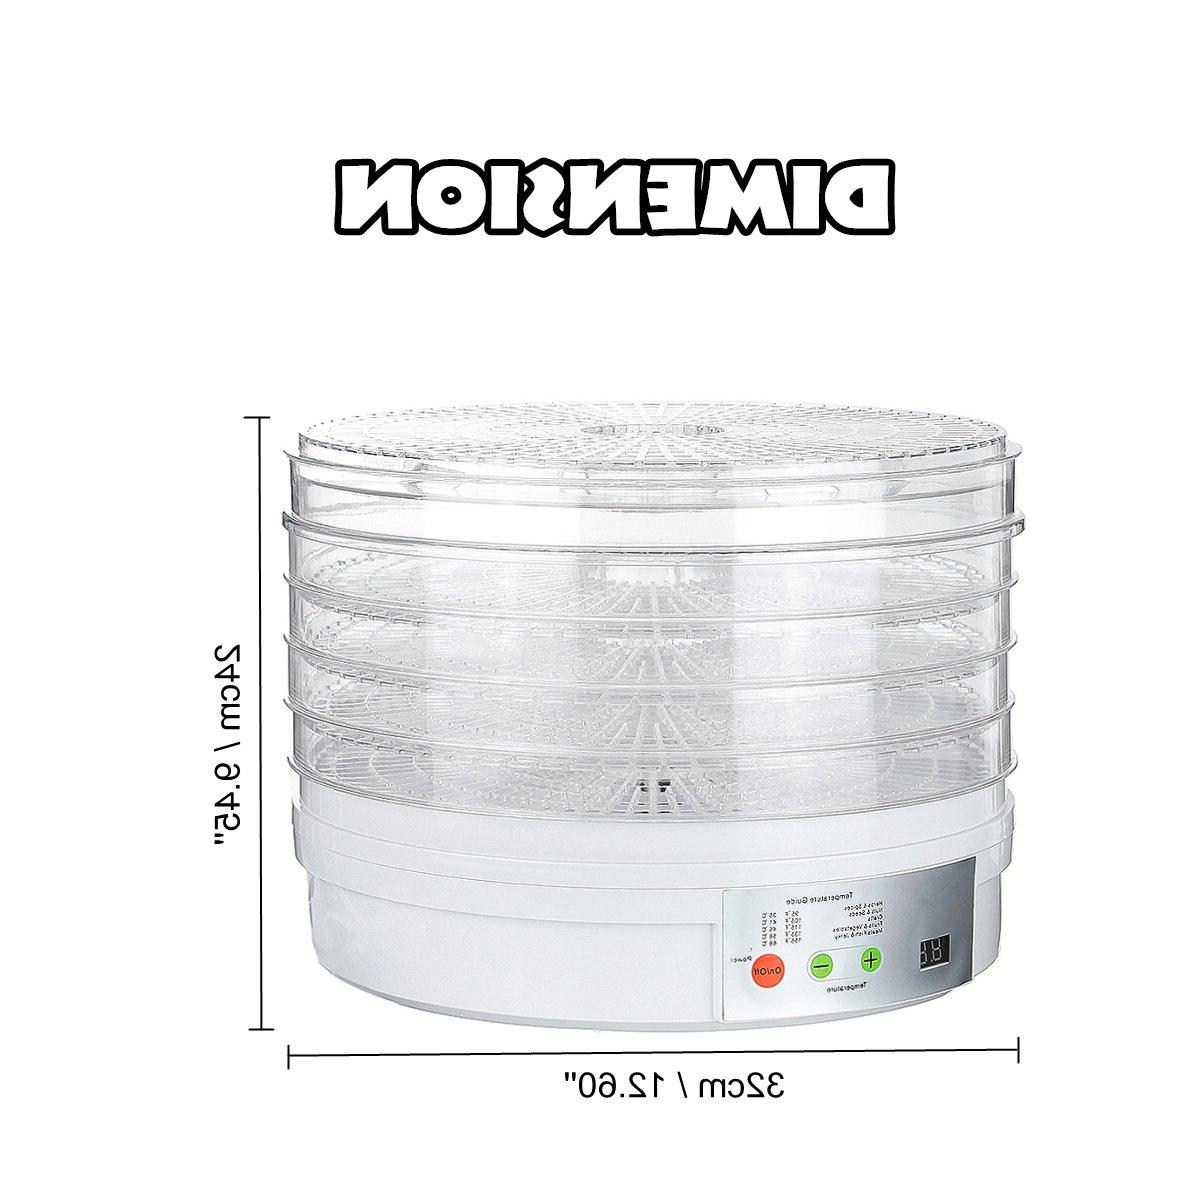 5 <font><b>Food</b></font> AS <font><b>Food</b></font> <font><b>Dehydrator</b></font> Fruit Herb Drying <font><b>Machine</b></font> <font><b>Food</b></font> Dried Fruit <font><b>Machine</b></font>